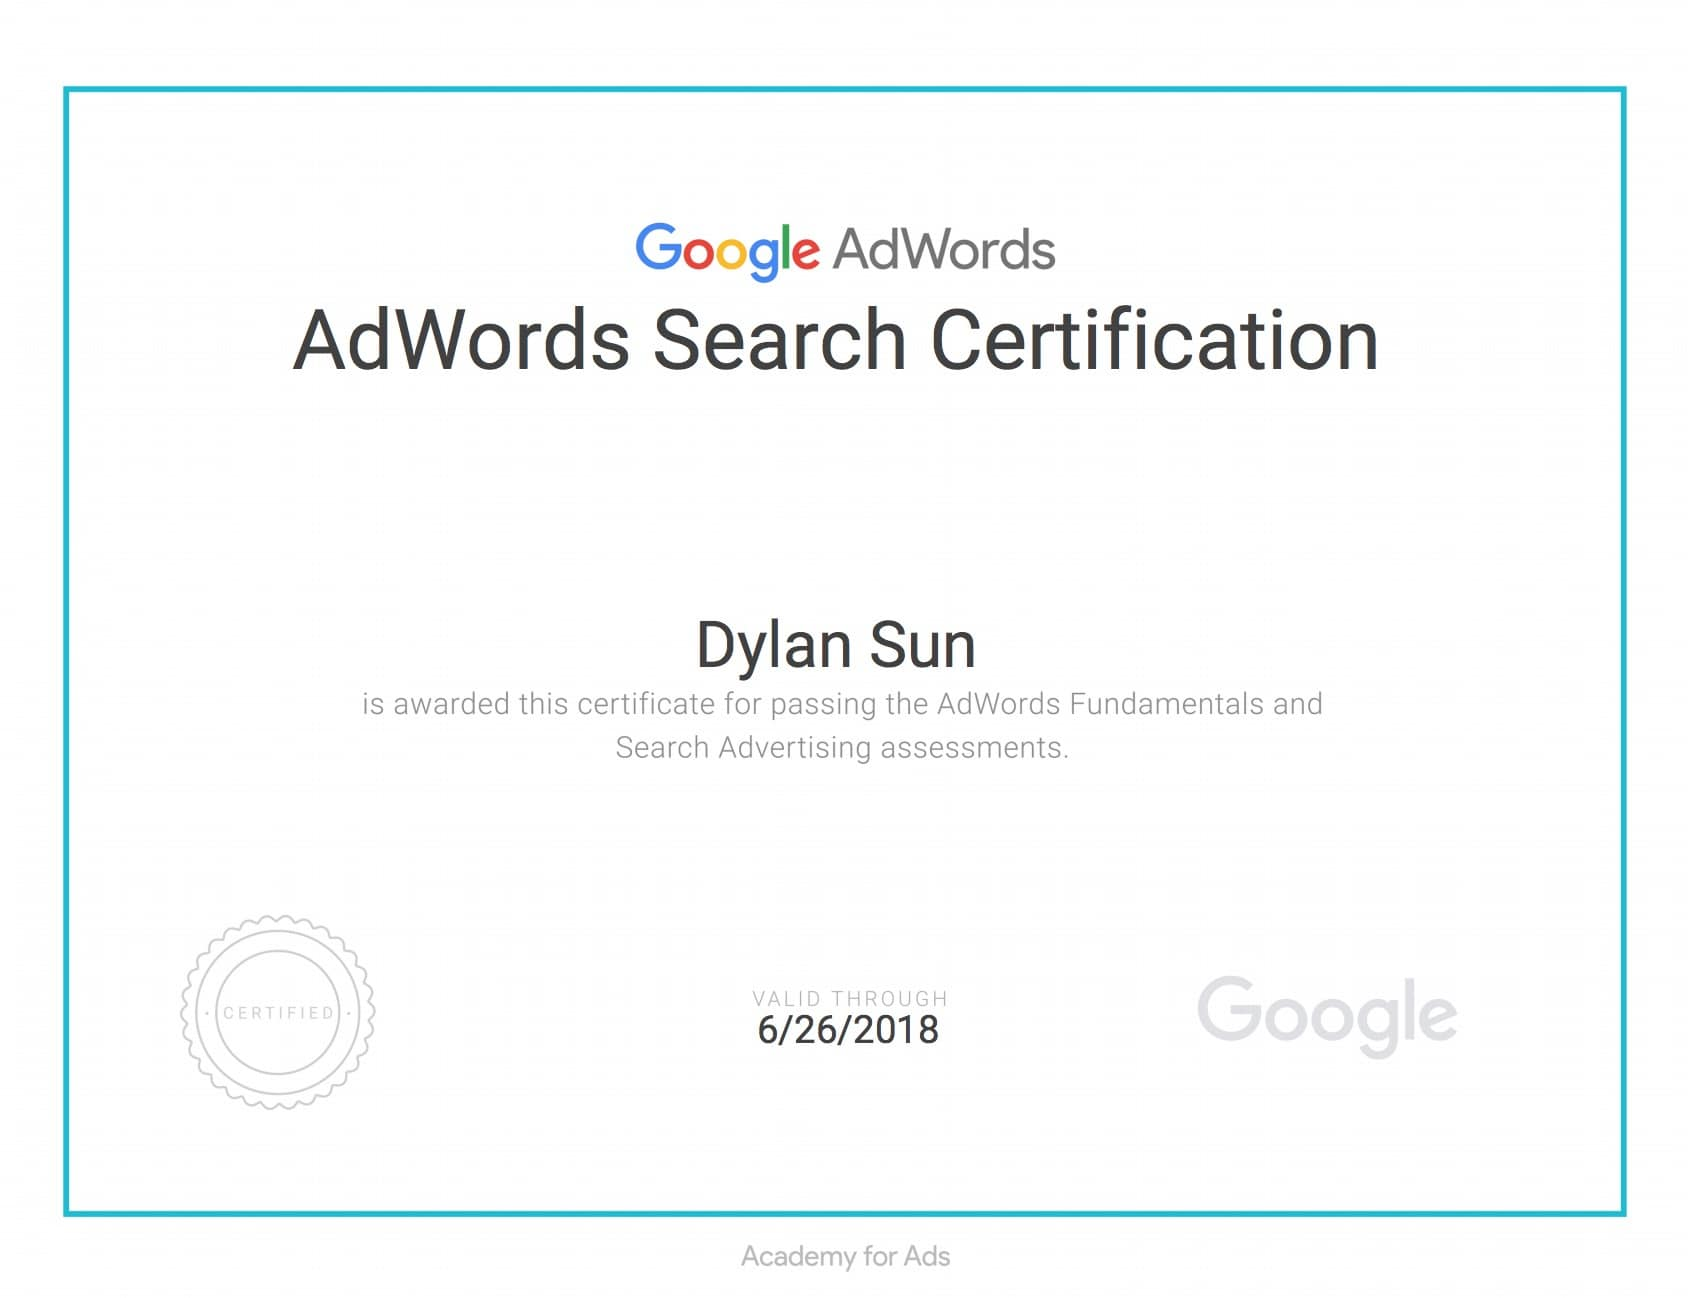 Google adwords fundamentals certification course 2018 equinet sample of google adwords search certification after passing adwords fundamentals and adwords search xflitez Image collections